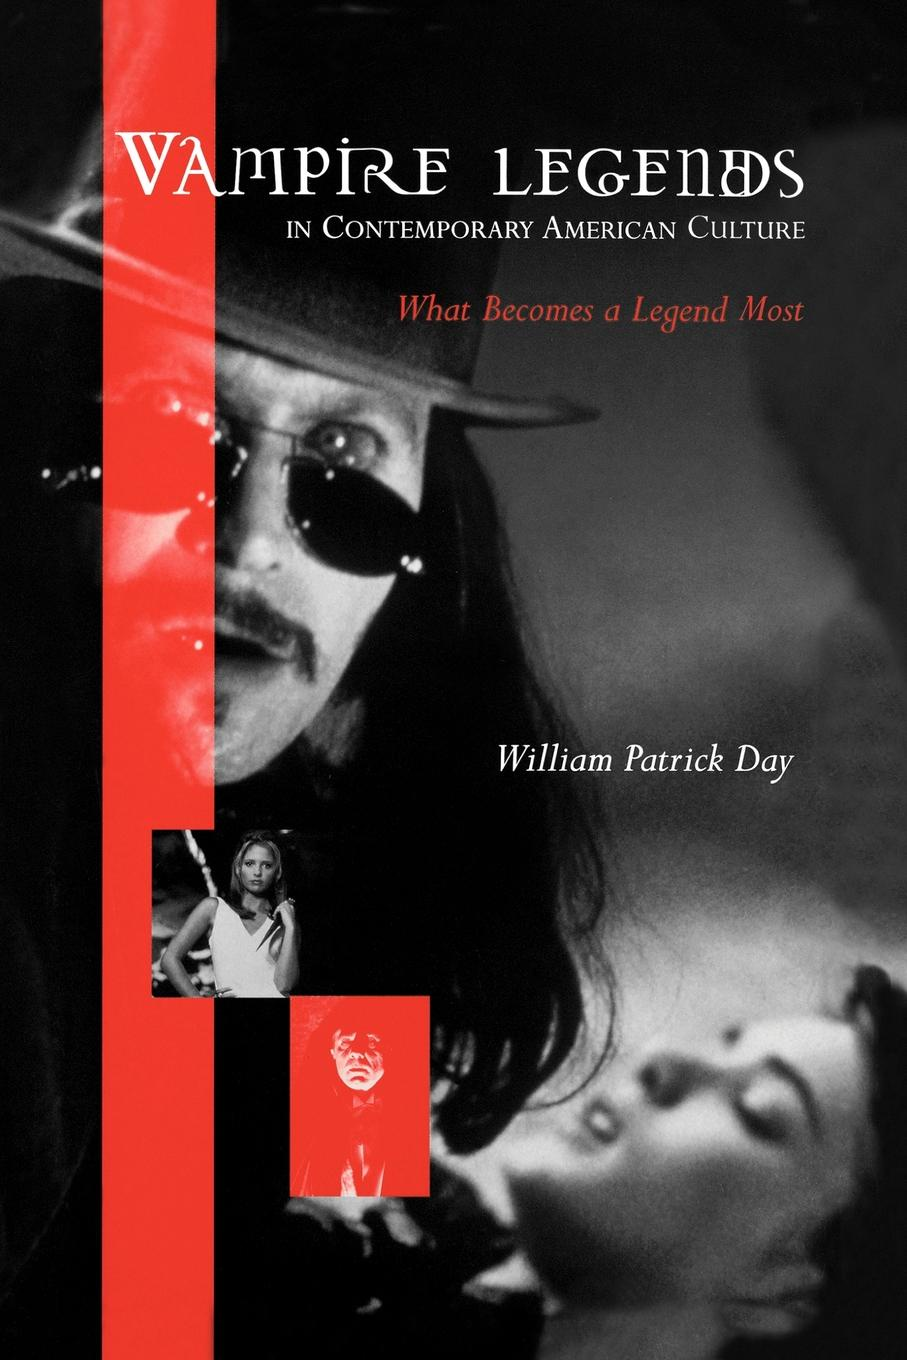 William Patrick Day Vampire Legends in Contemporary American Culture. What Becomes a Legend Most